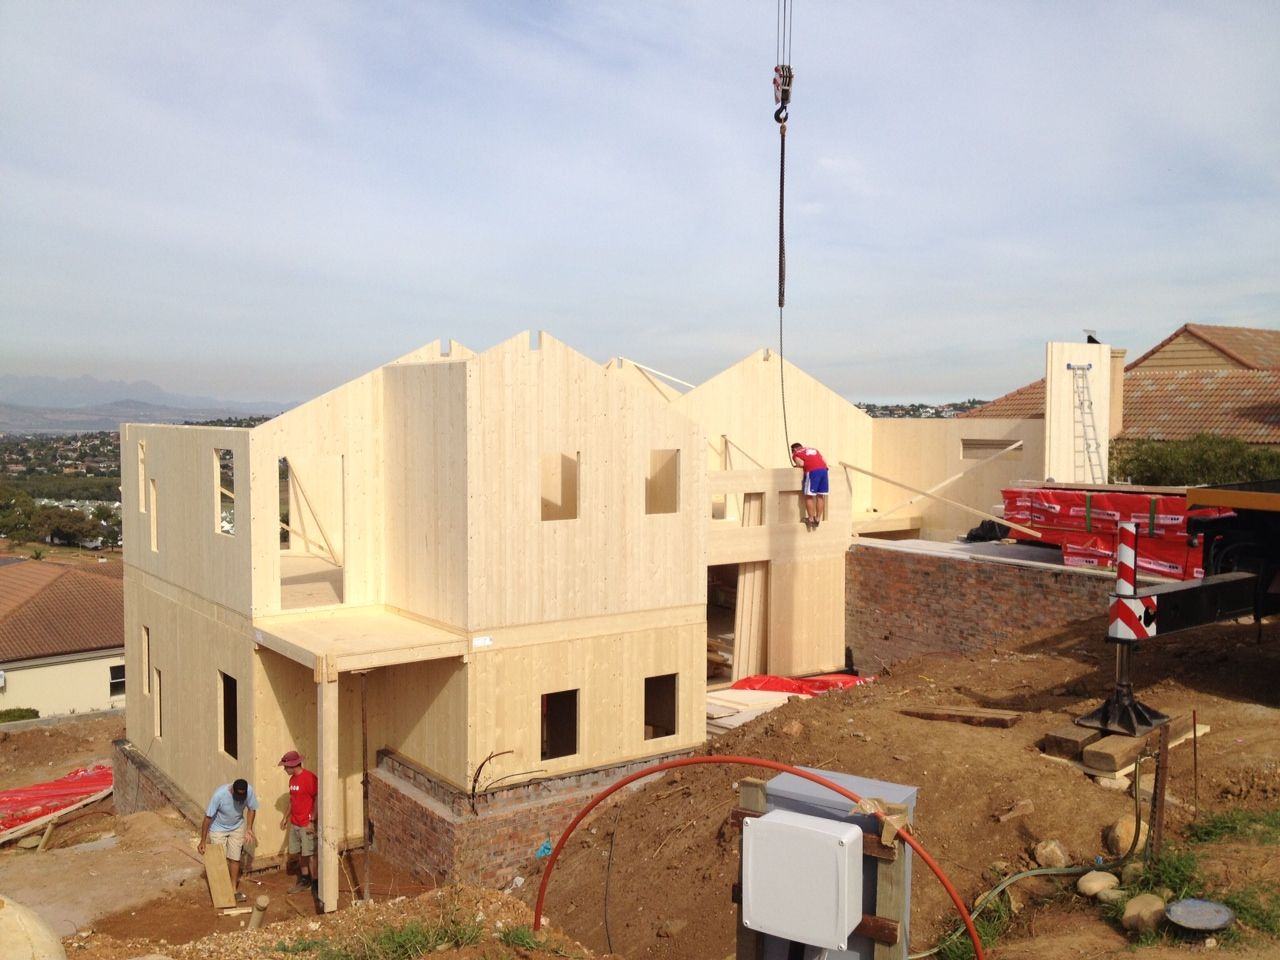 First Novatop System house in Africa - walls complete in 5 days